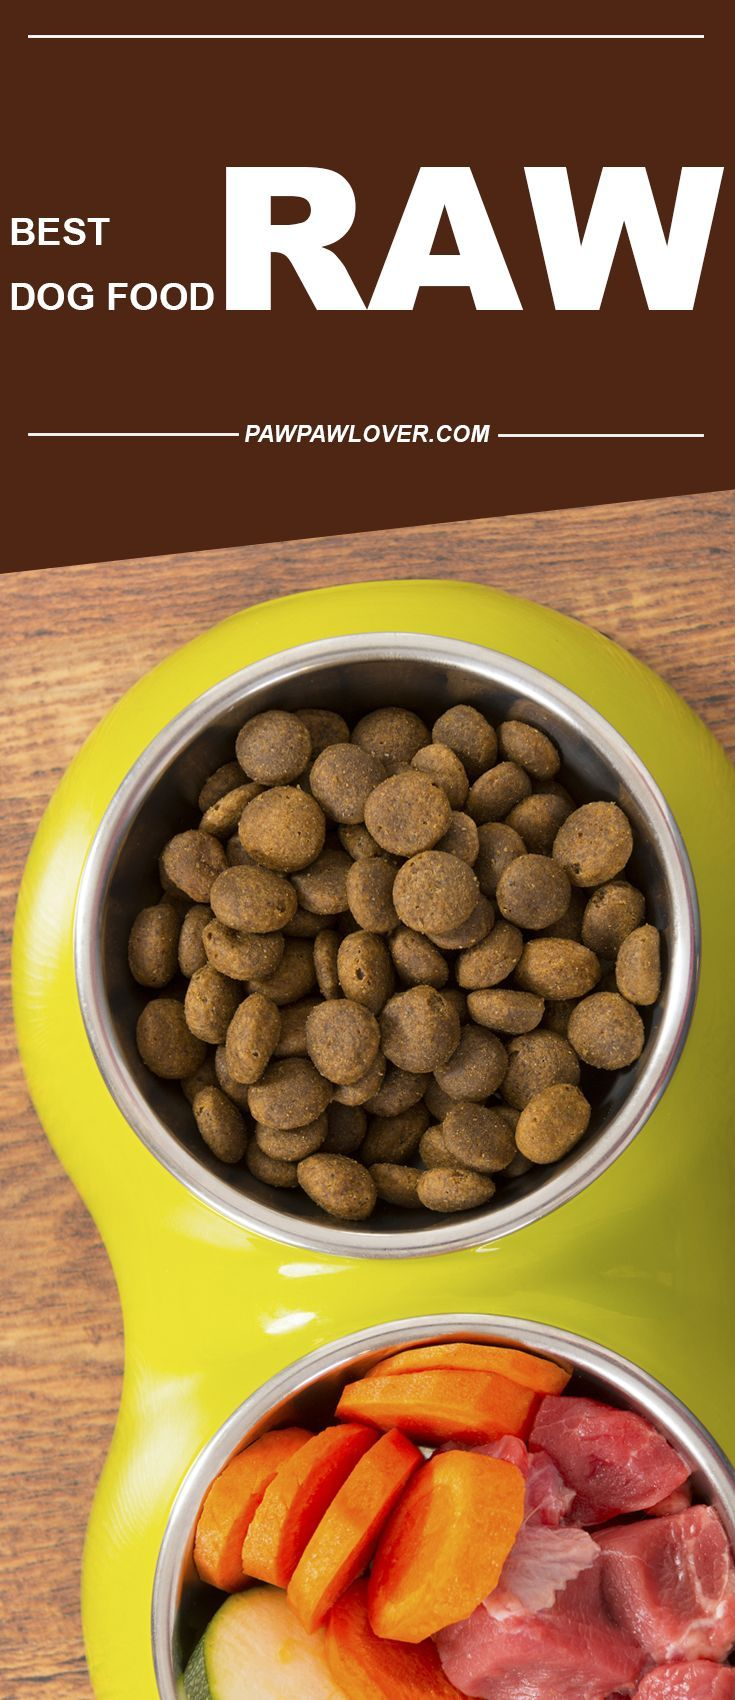 Best Raw Dog Food 2018 Top 5 Choices Anything Animals Board